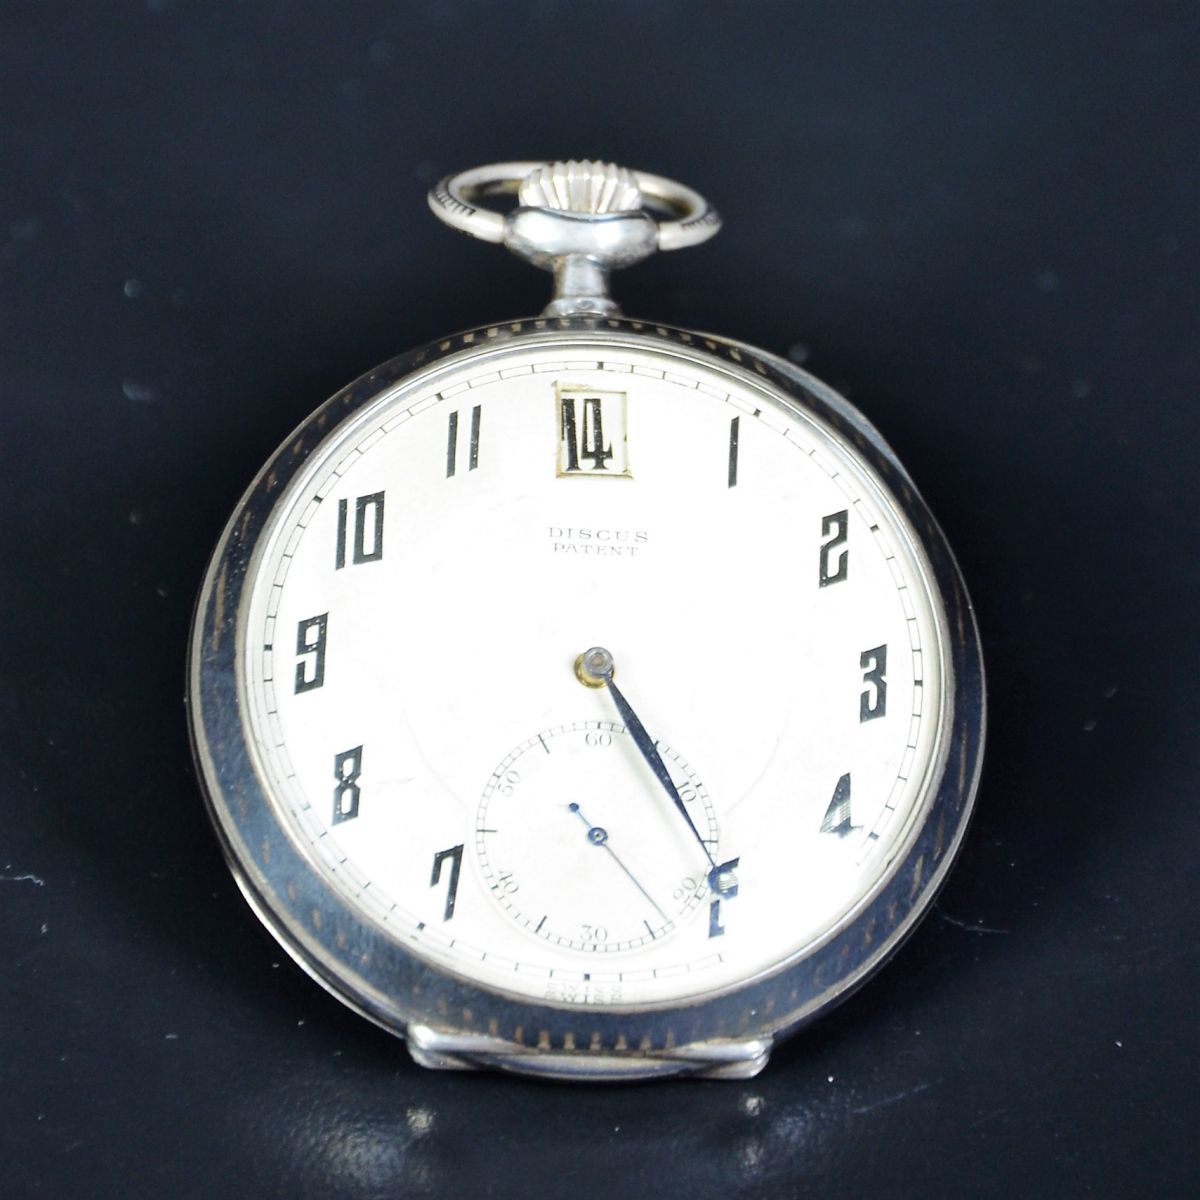 Silver pocket watch. Silver plated clock face. Signed Discous Patent. Very good condition. From the...